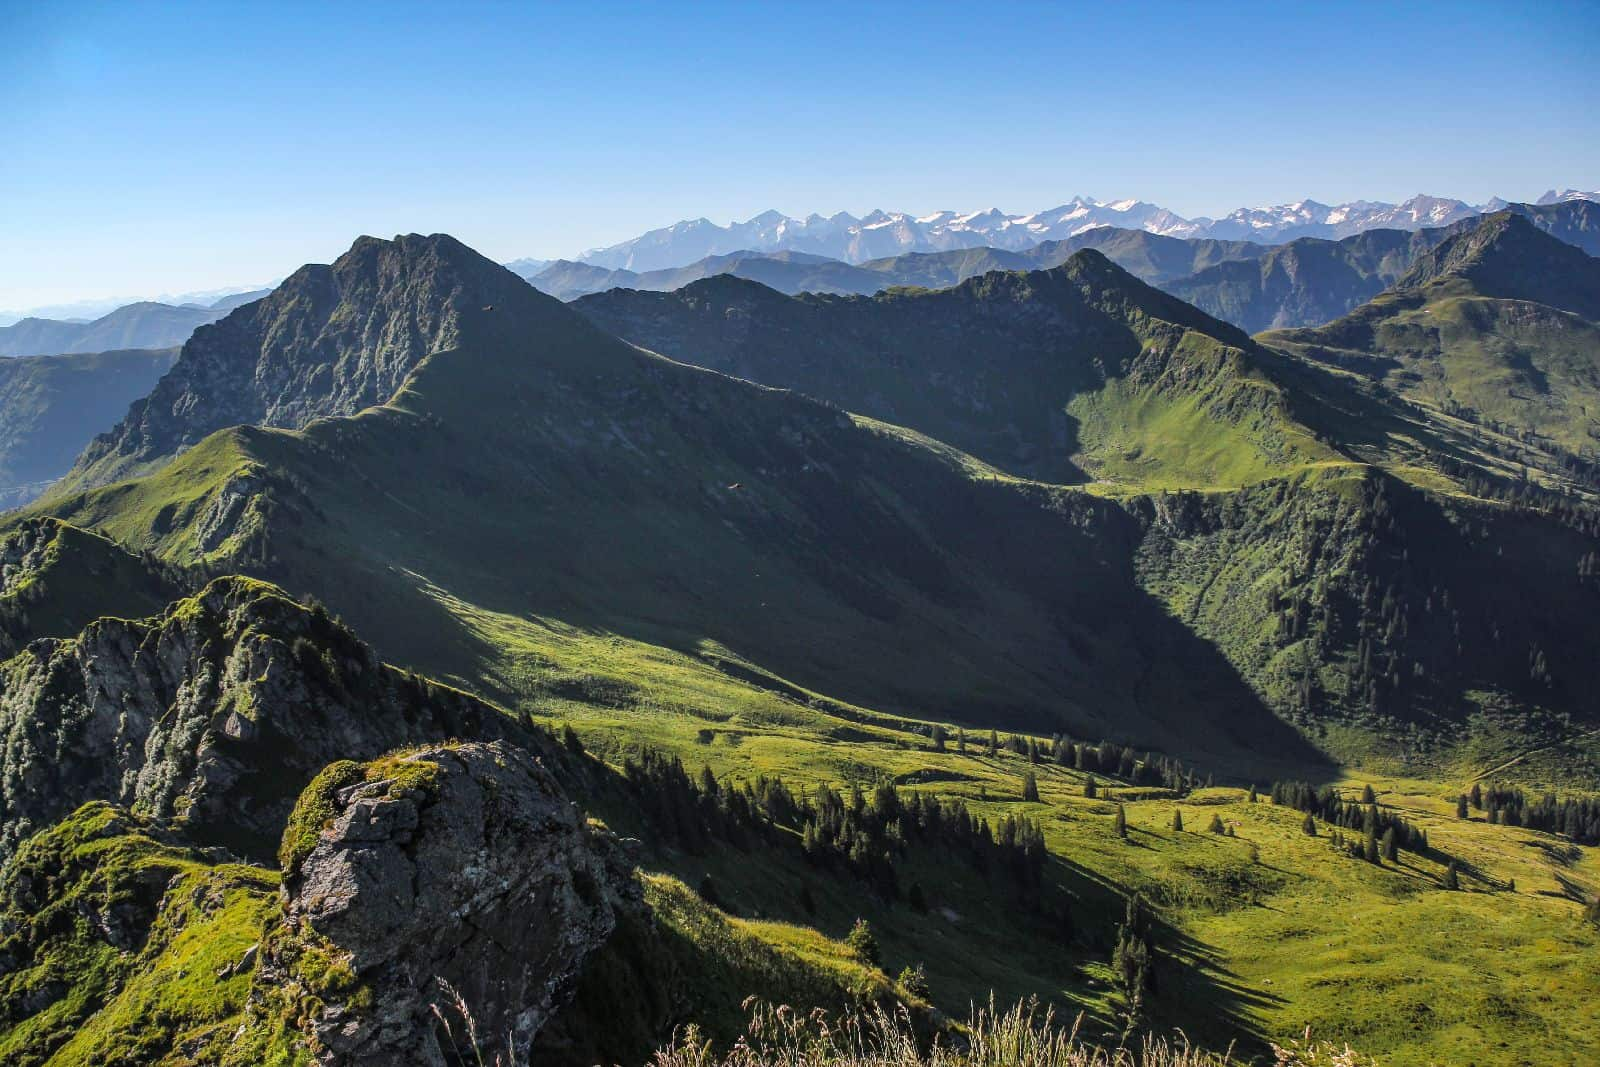 Panoramic view of summits in the austrian alps - Kitzbuehel, Tyrol, Austria_shutterstock_1121325947.jpg